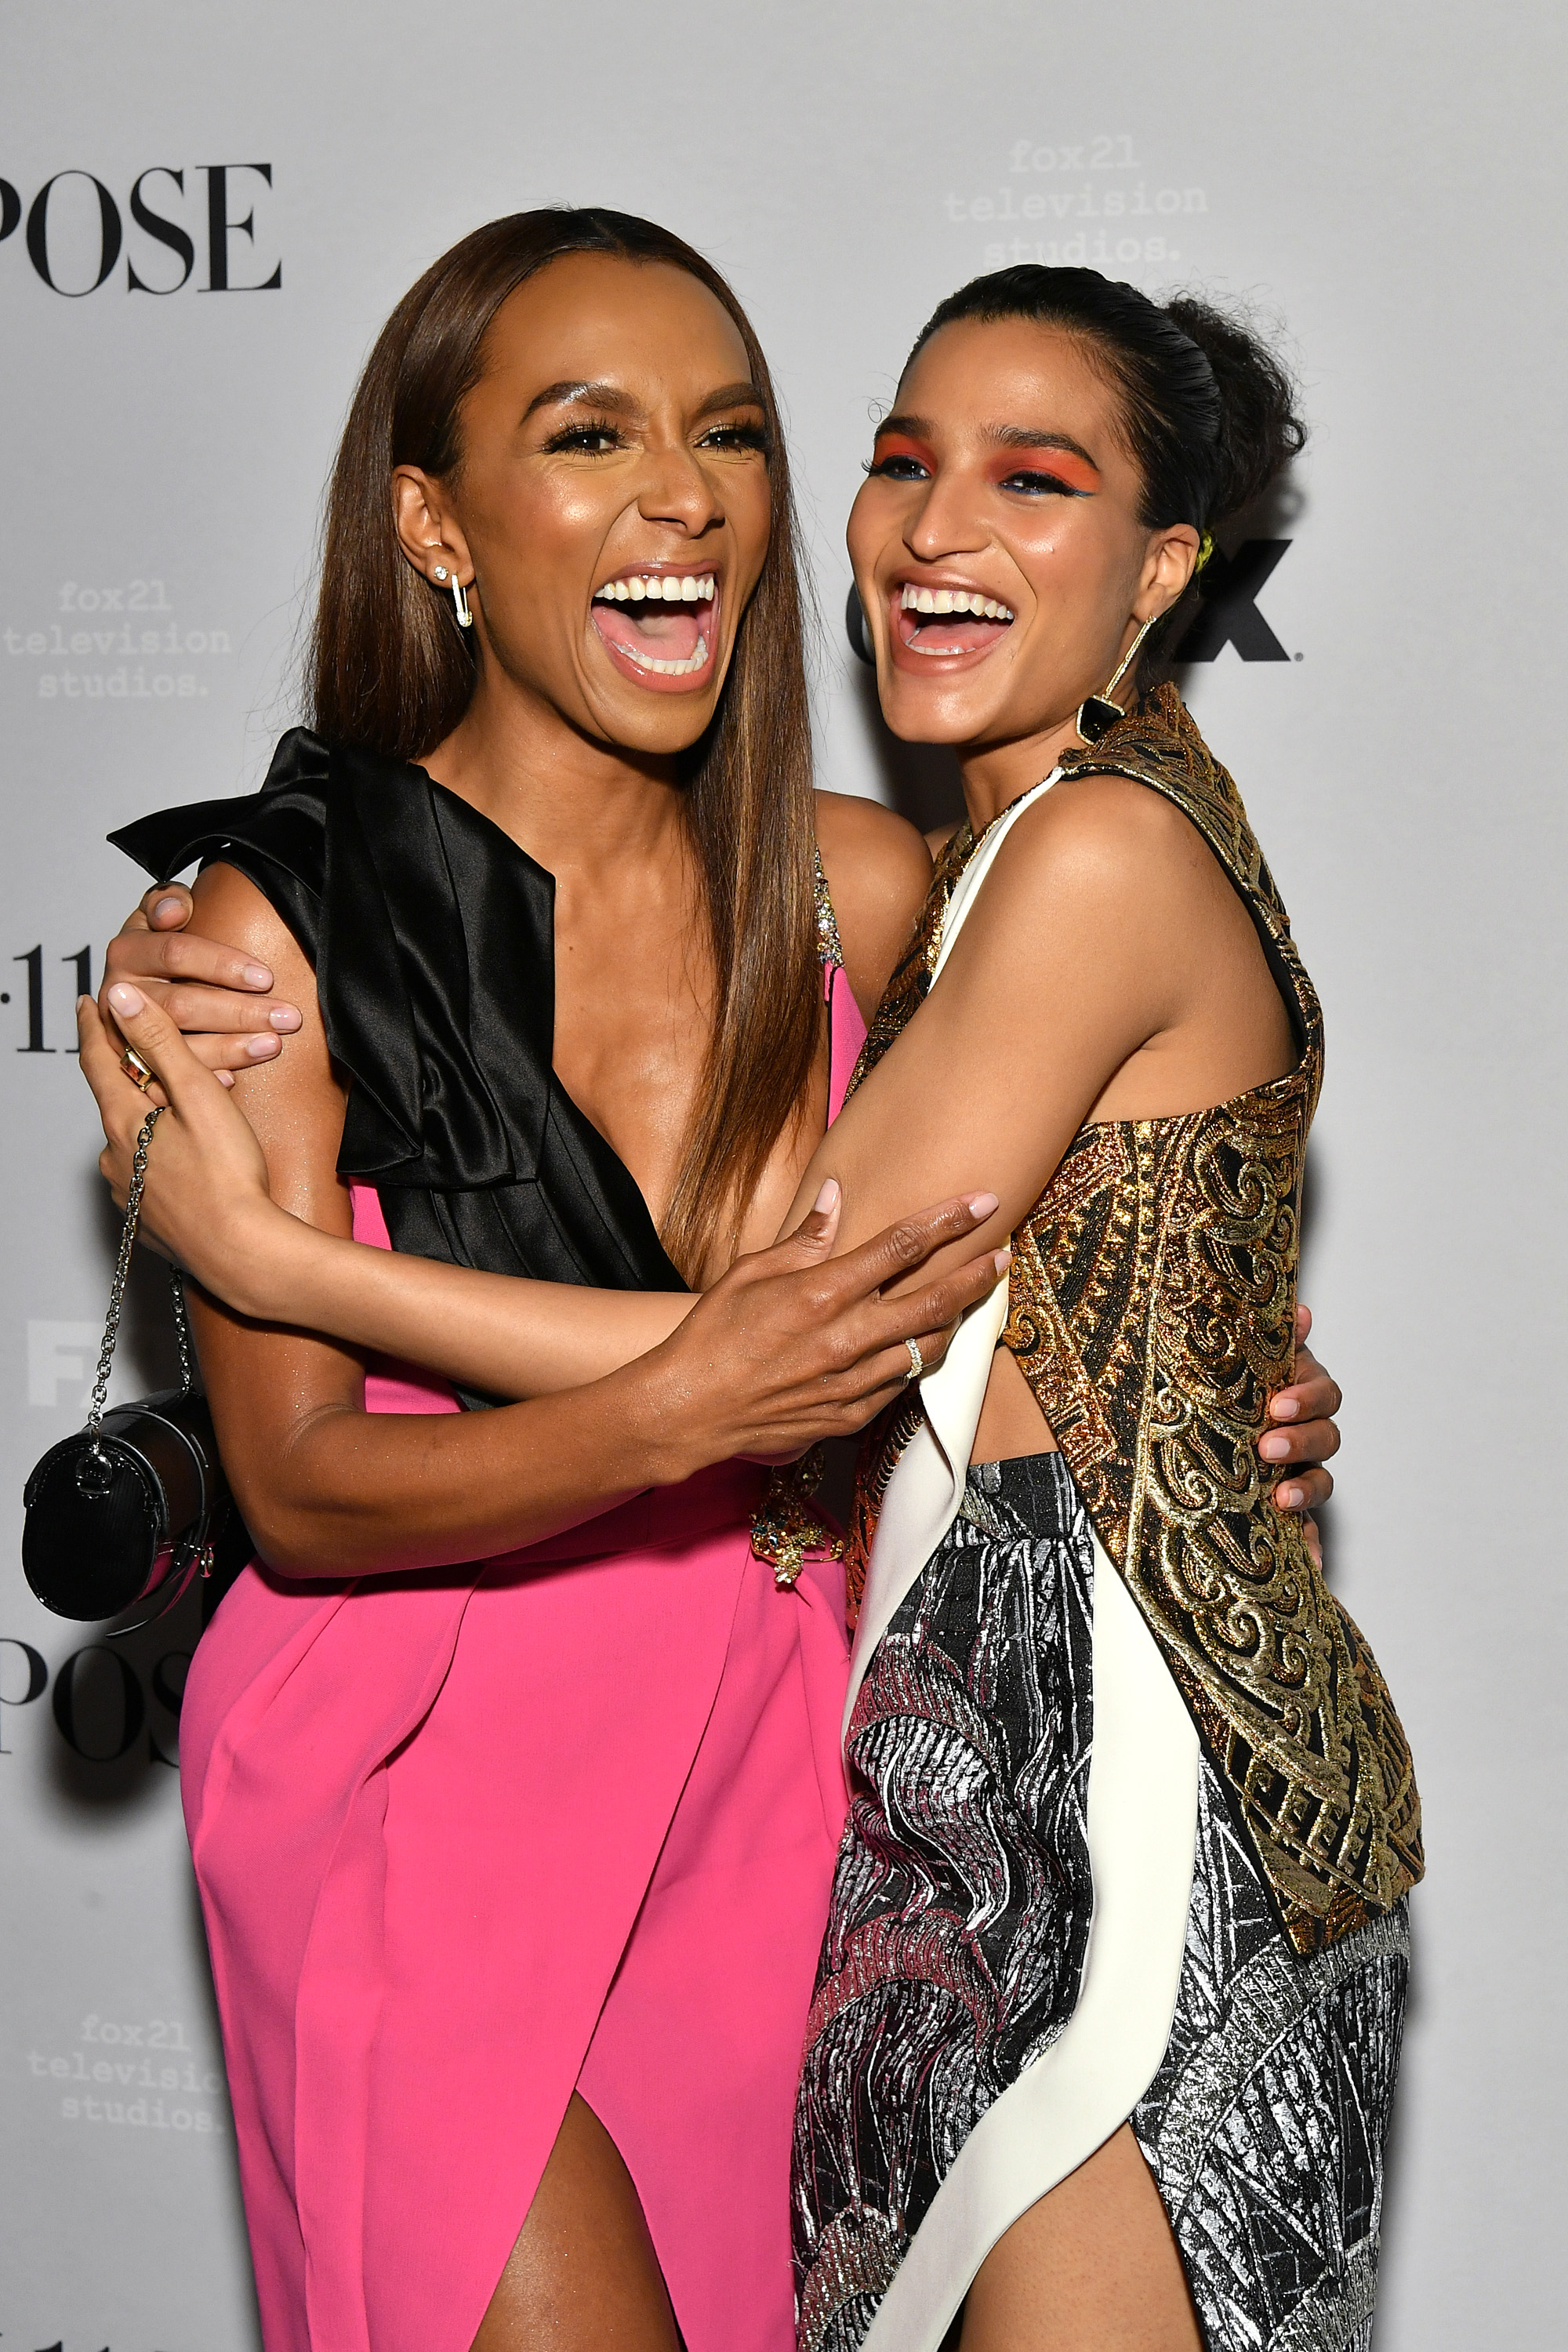 Janet Mock and Indya Moore at an event for Pose (2018)